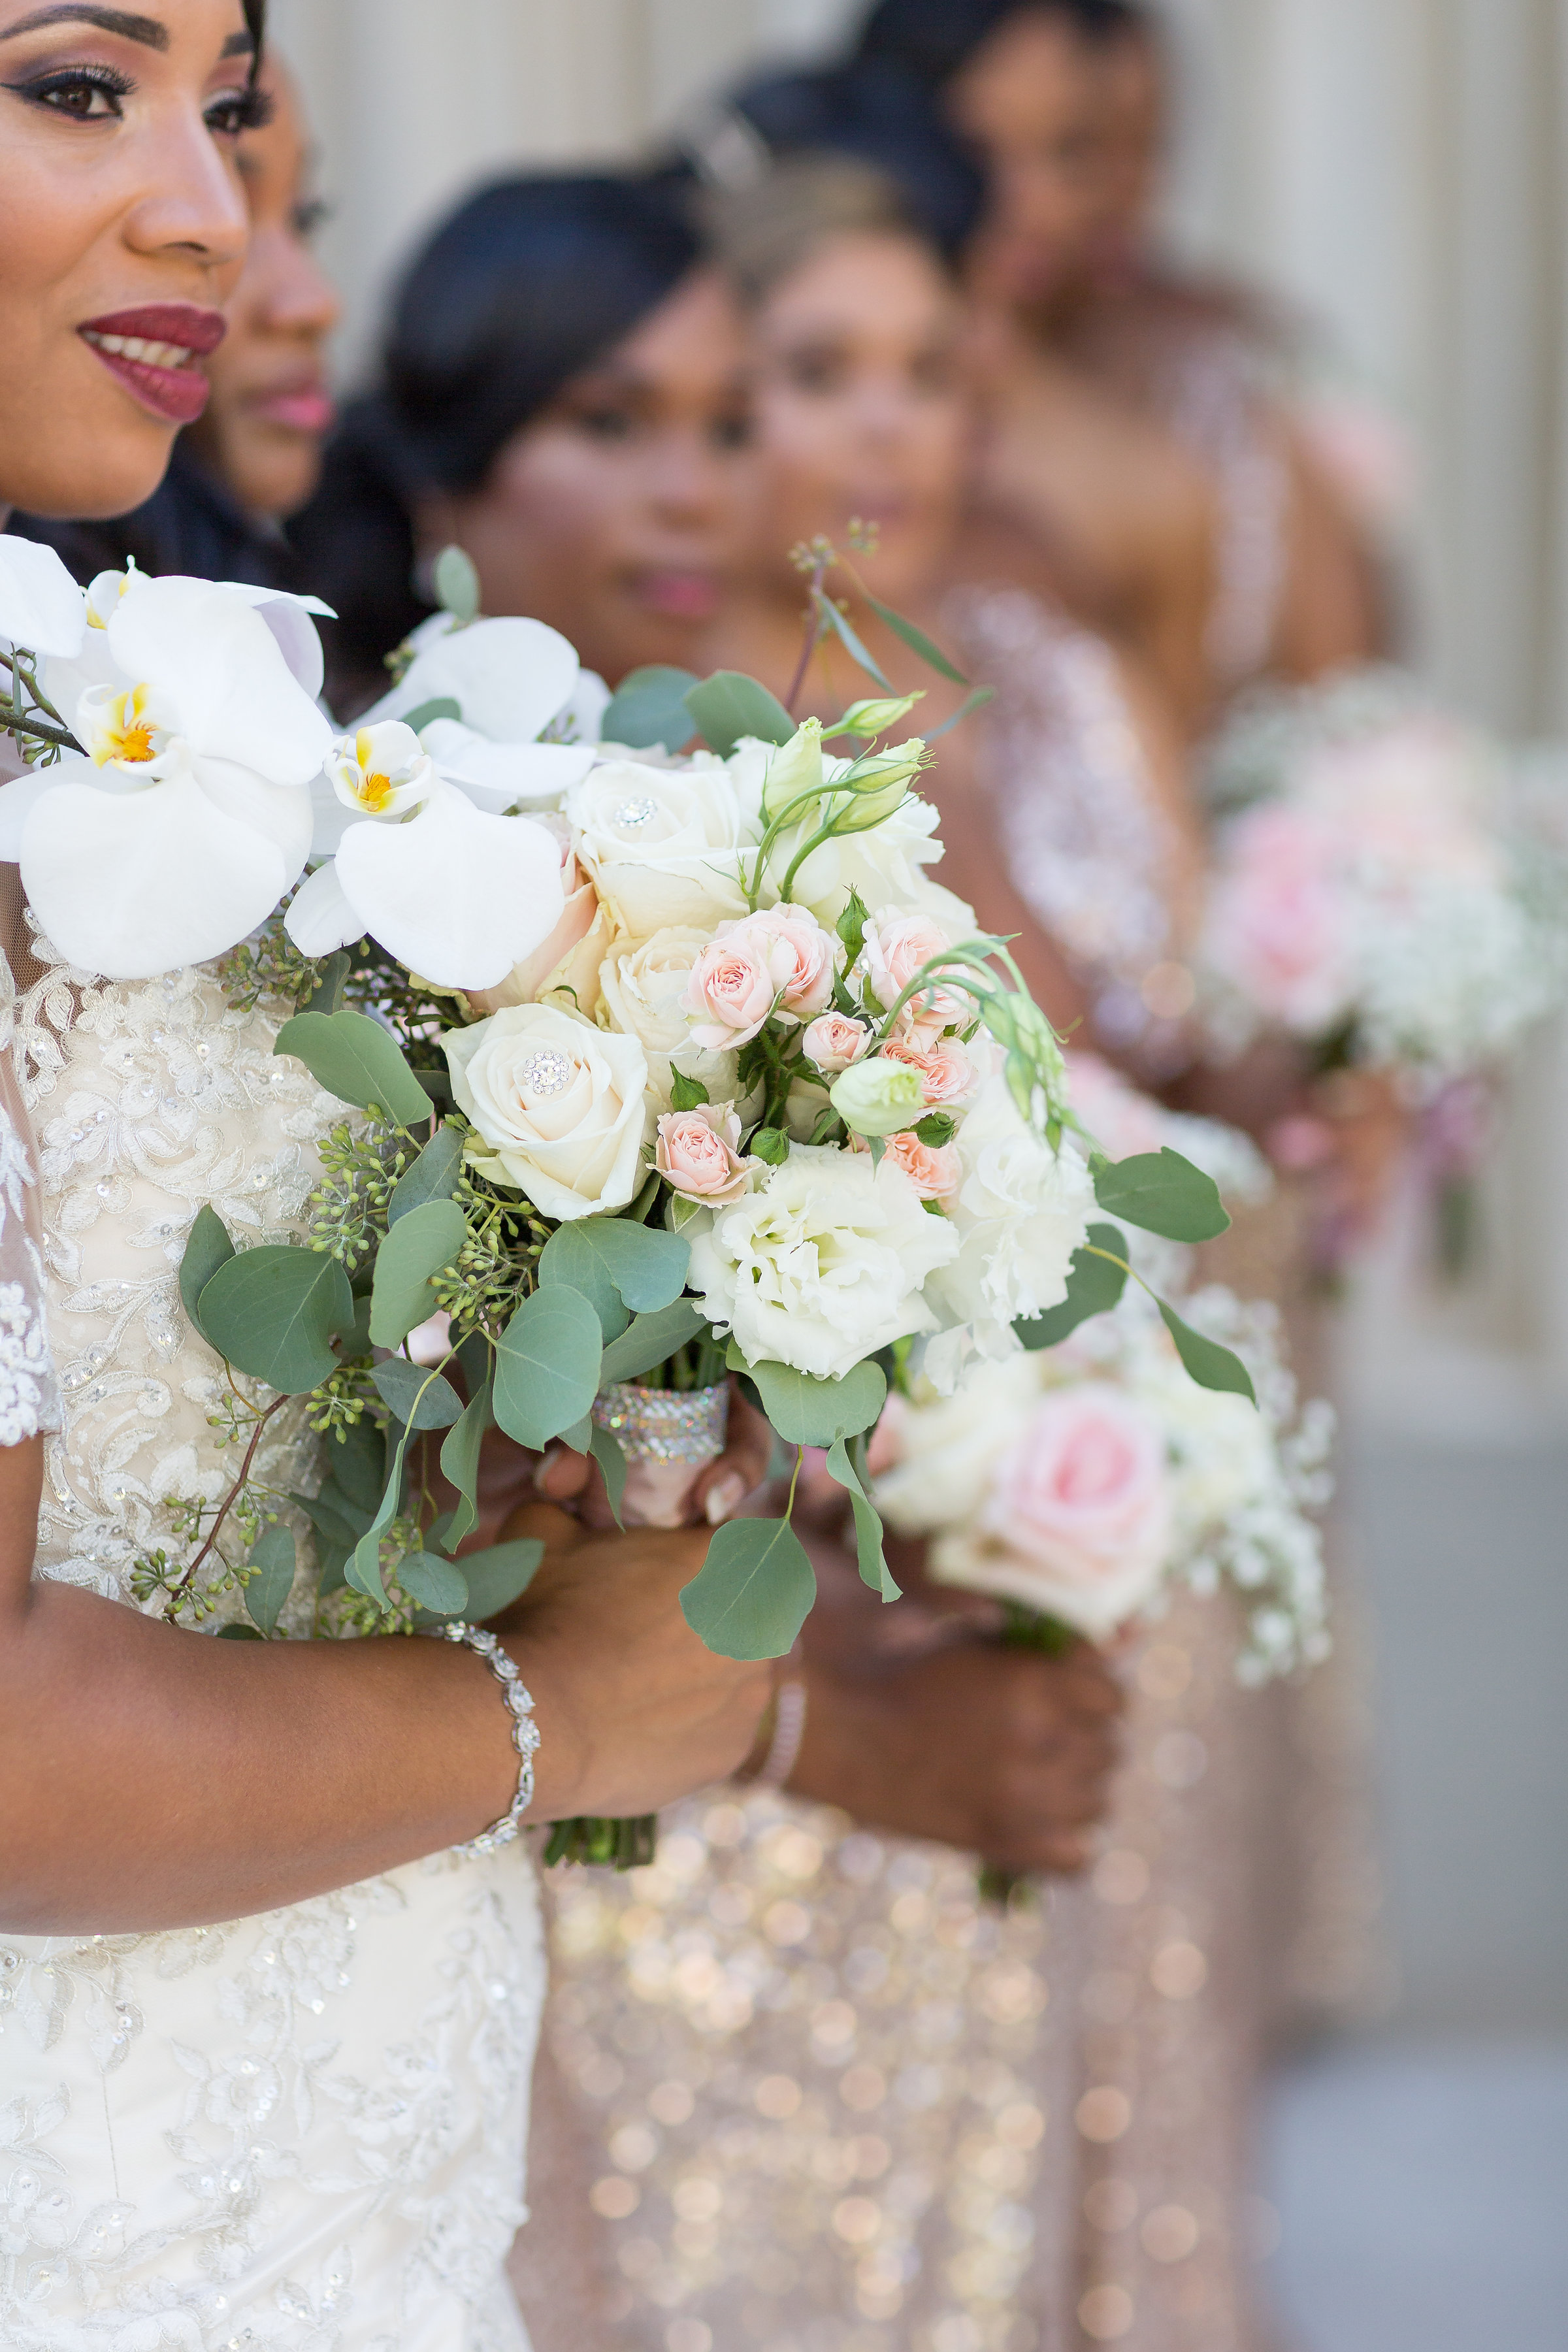 ! Artistic Wedding Ceremony Photography of Bride and Bridesmaids with Bouquets.jpg